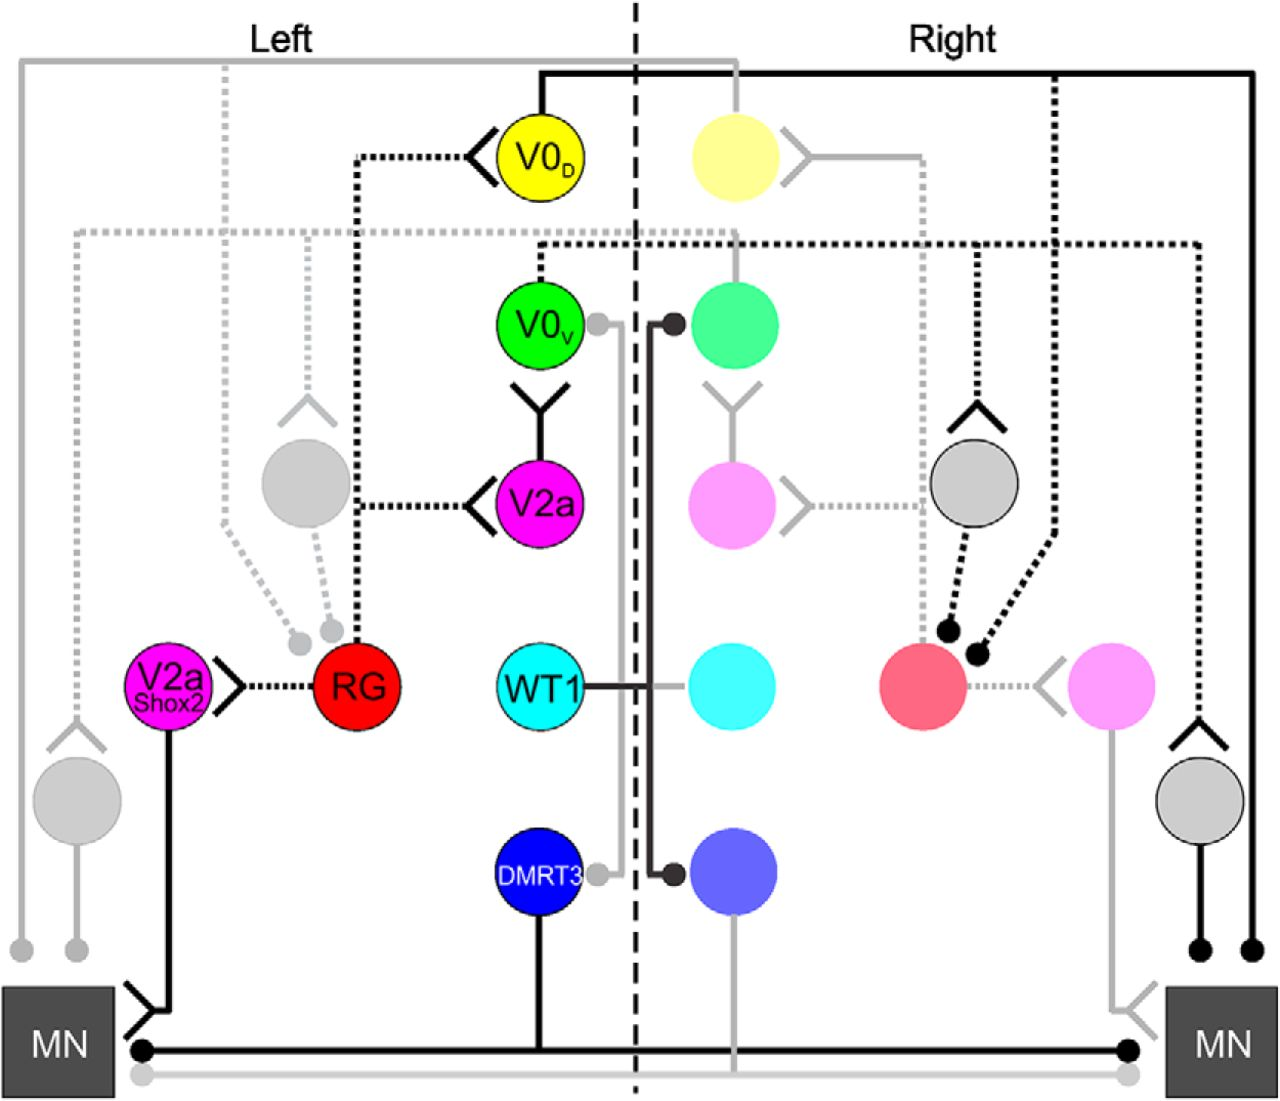 Wt1 Expressing Interneurons Regulate Leftright Alternation During Diagram 7 Stepping To The Left Full Size Download Figure